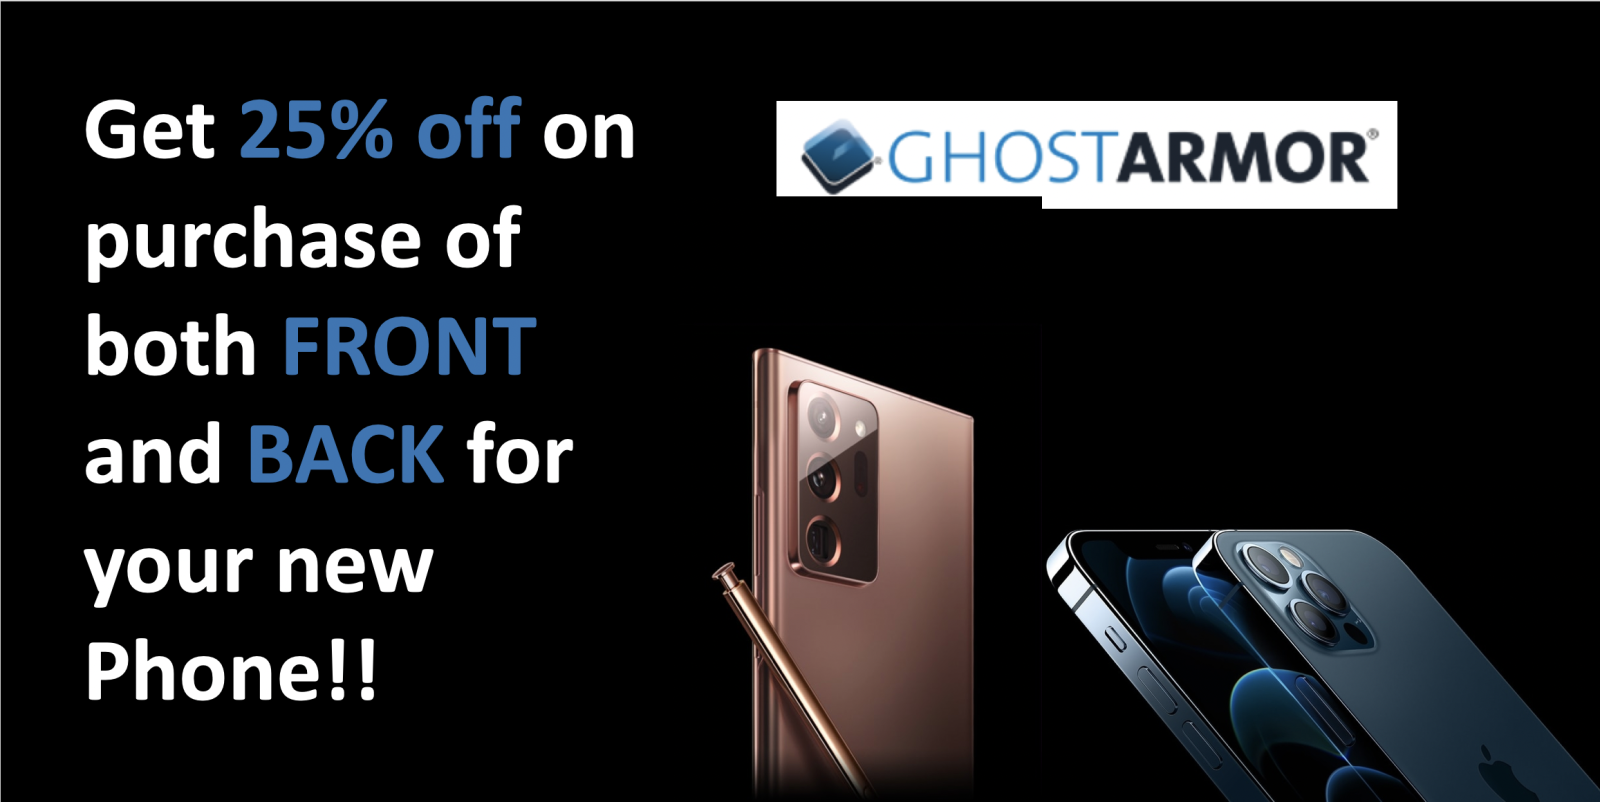 [Image] [offer] 25% OFF SCRATCH-PROOF SCREEN INSTALLATION FOR YOUR DEVICE!